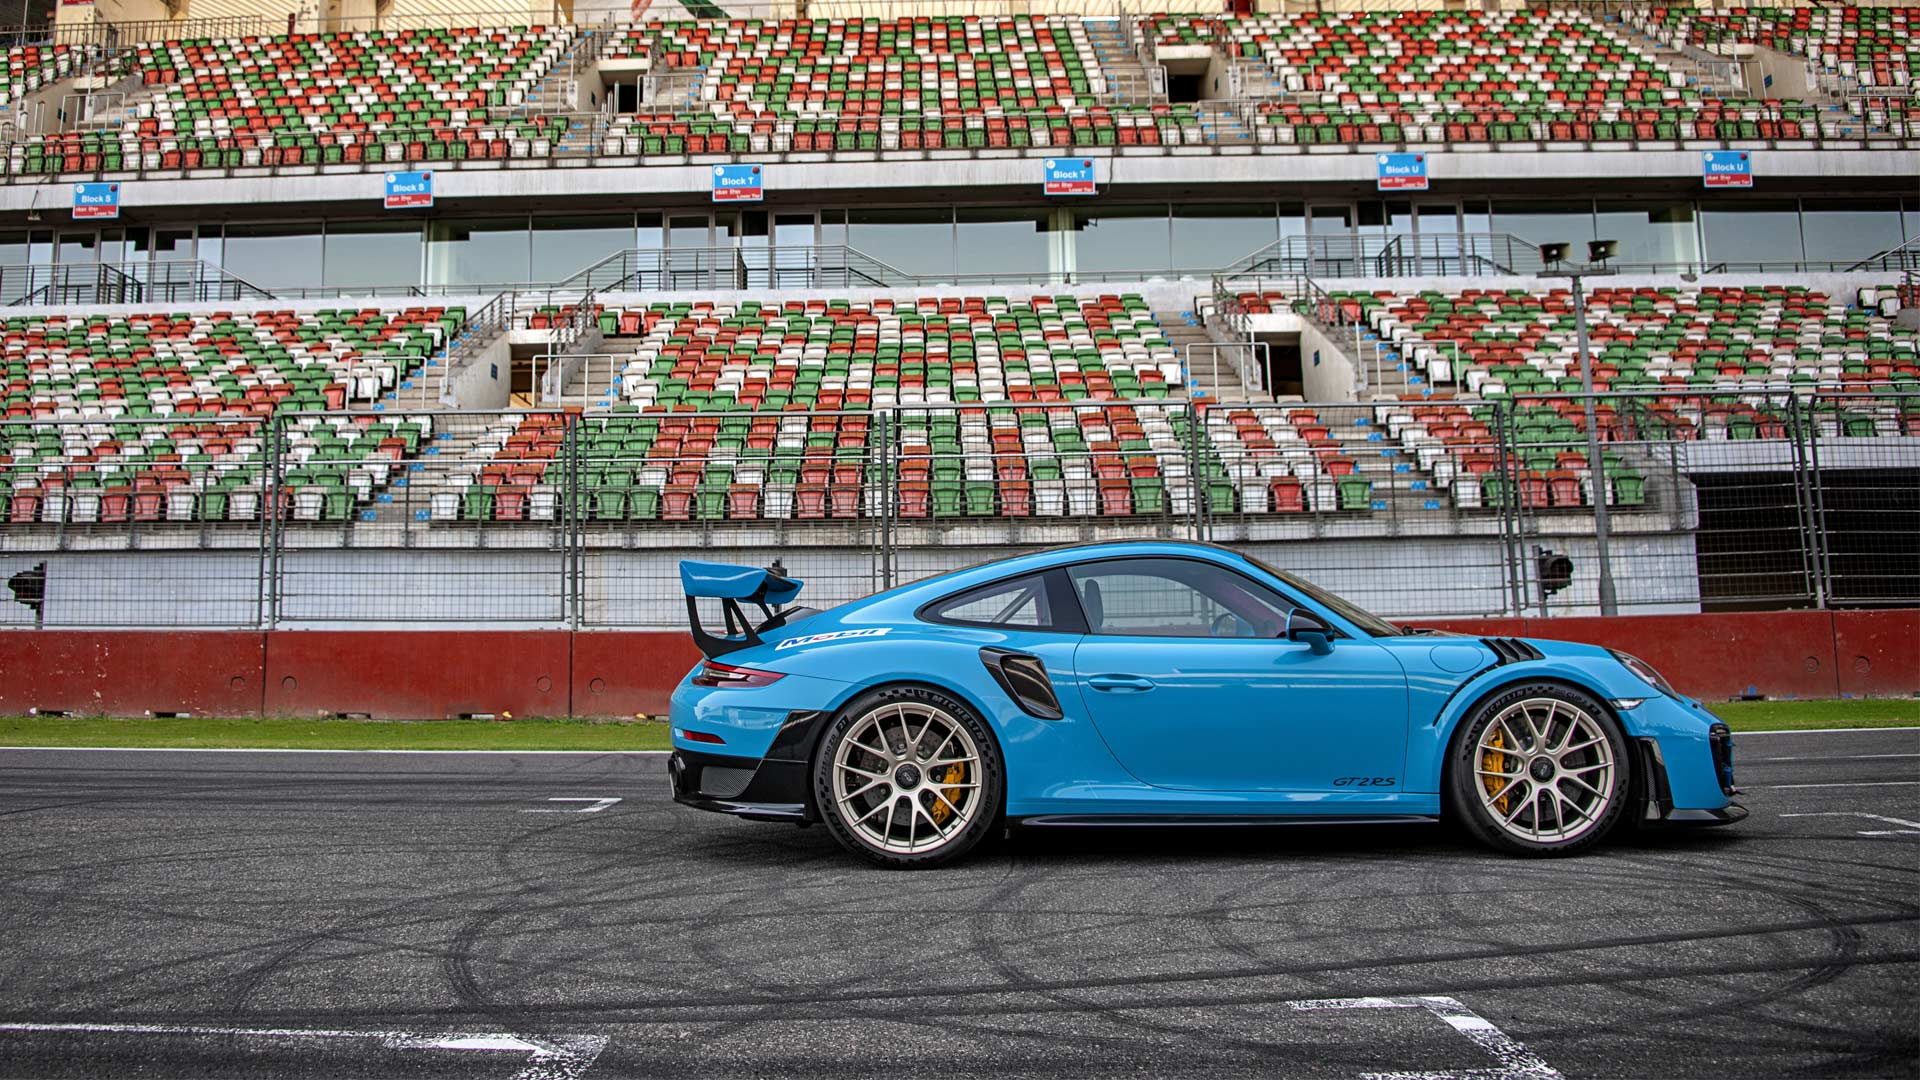 Porsche-911-GT2-RS-Buddh-International-Circuit-lap-record_2